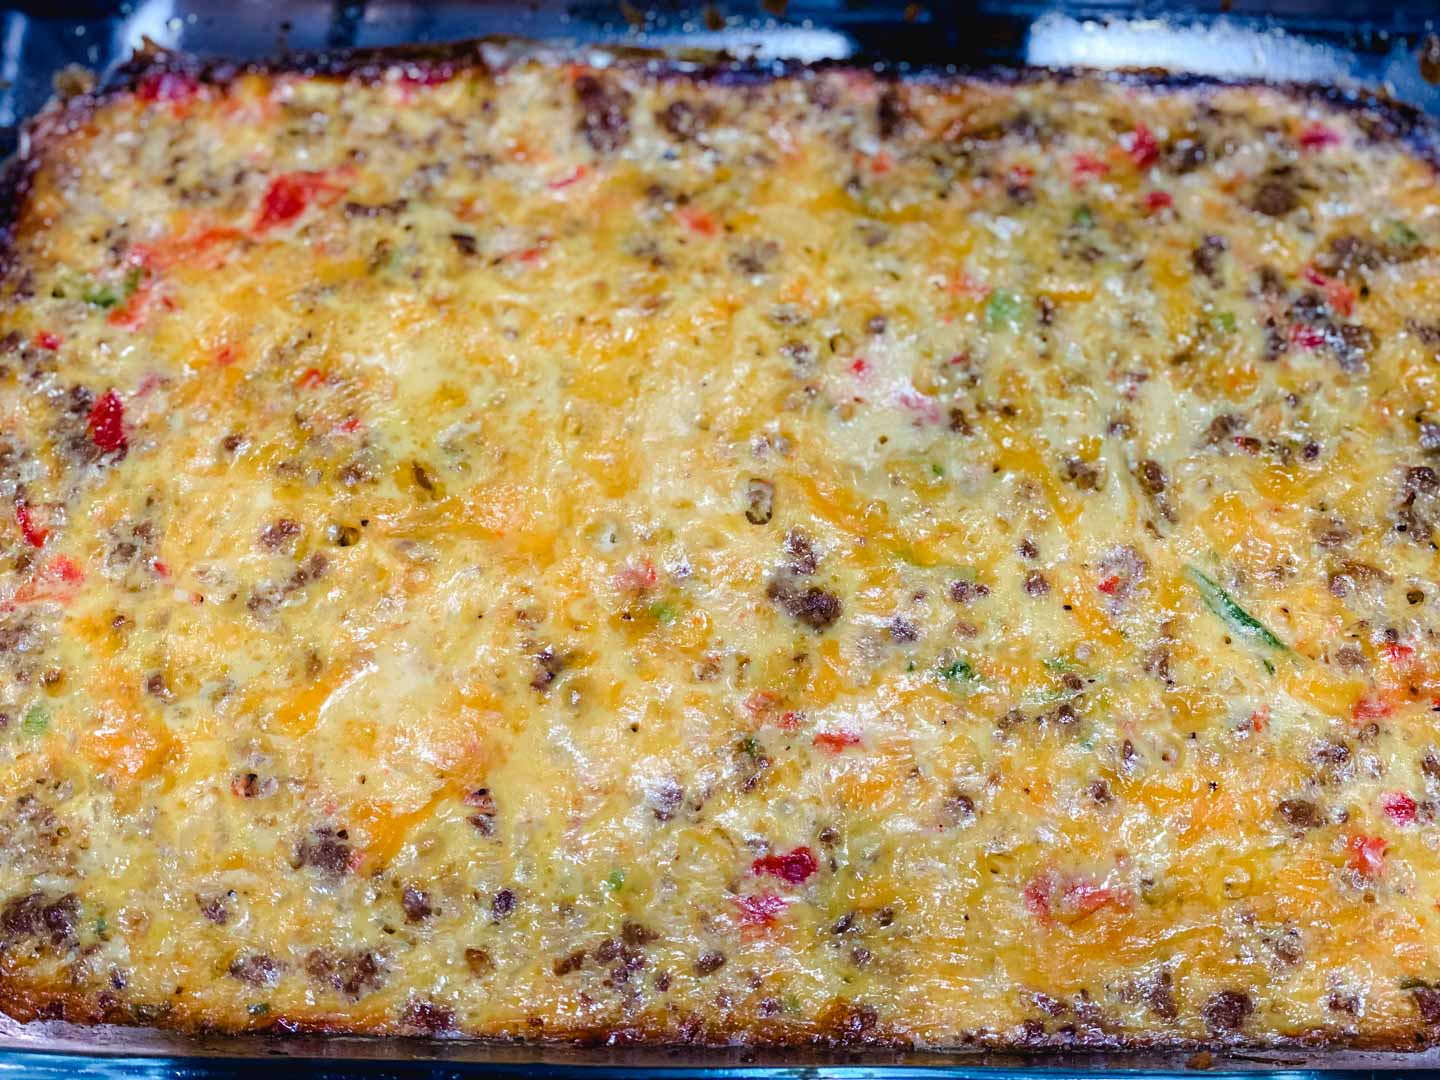 Cooked egg casserole.